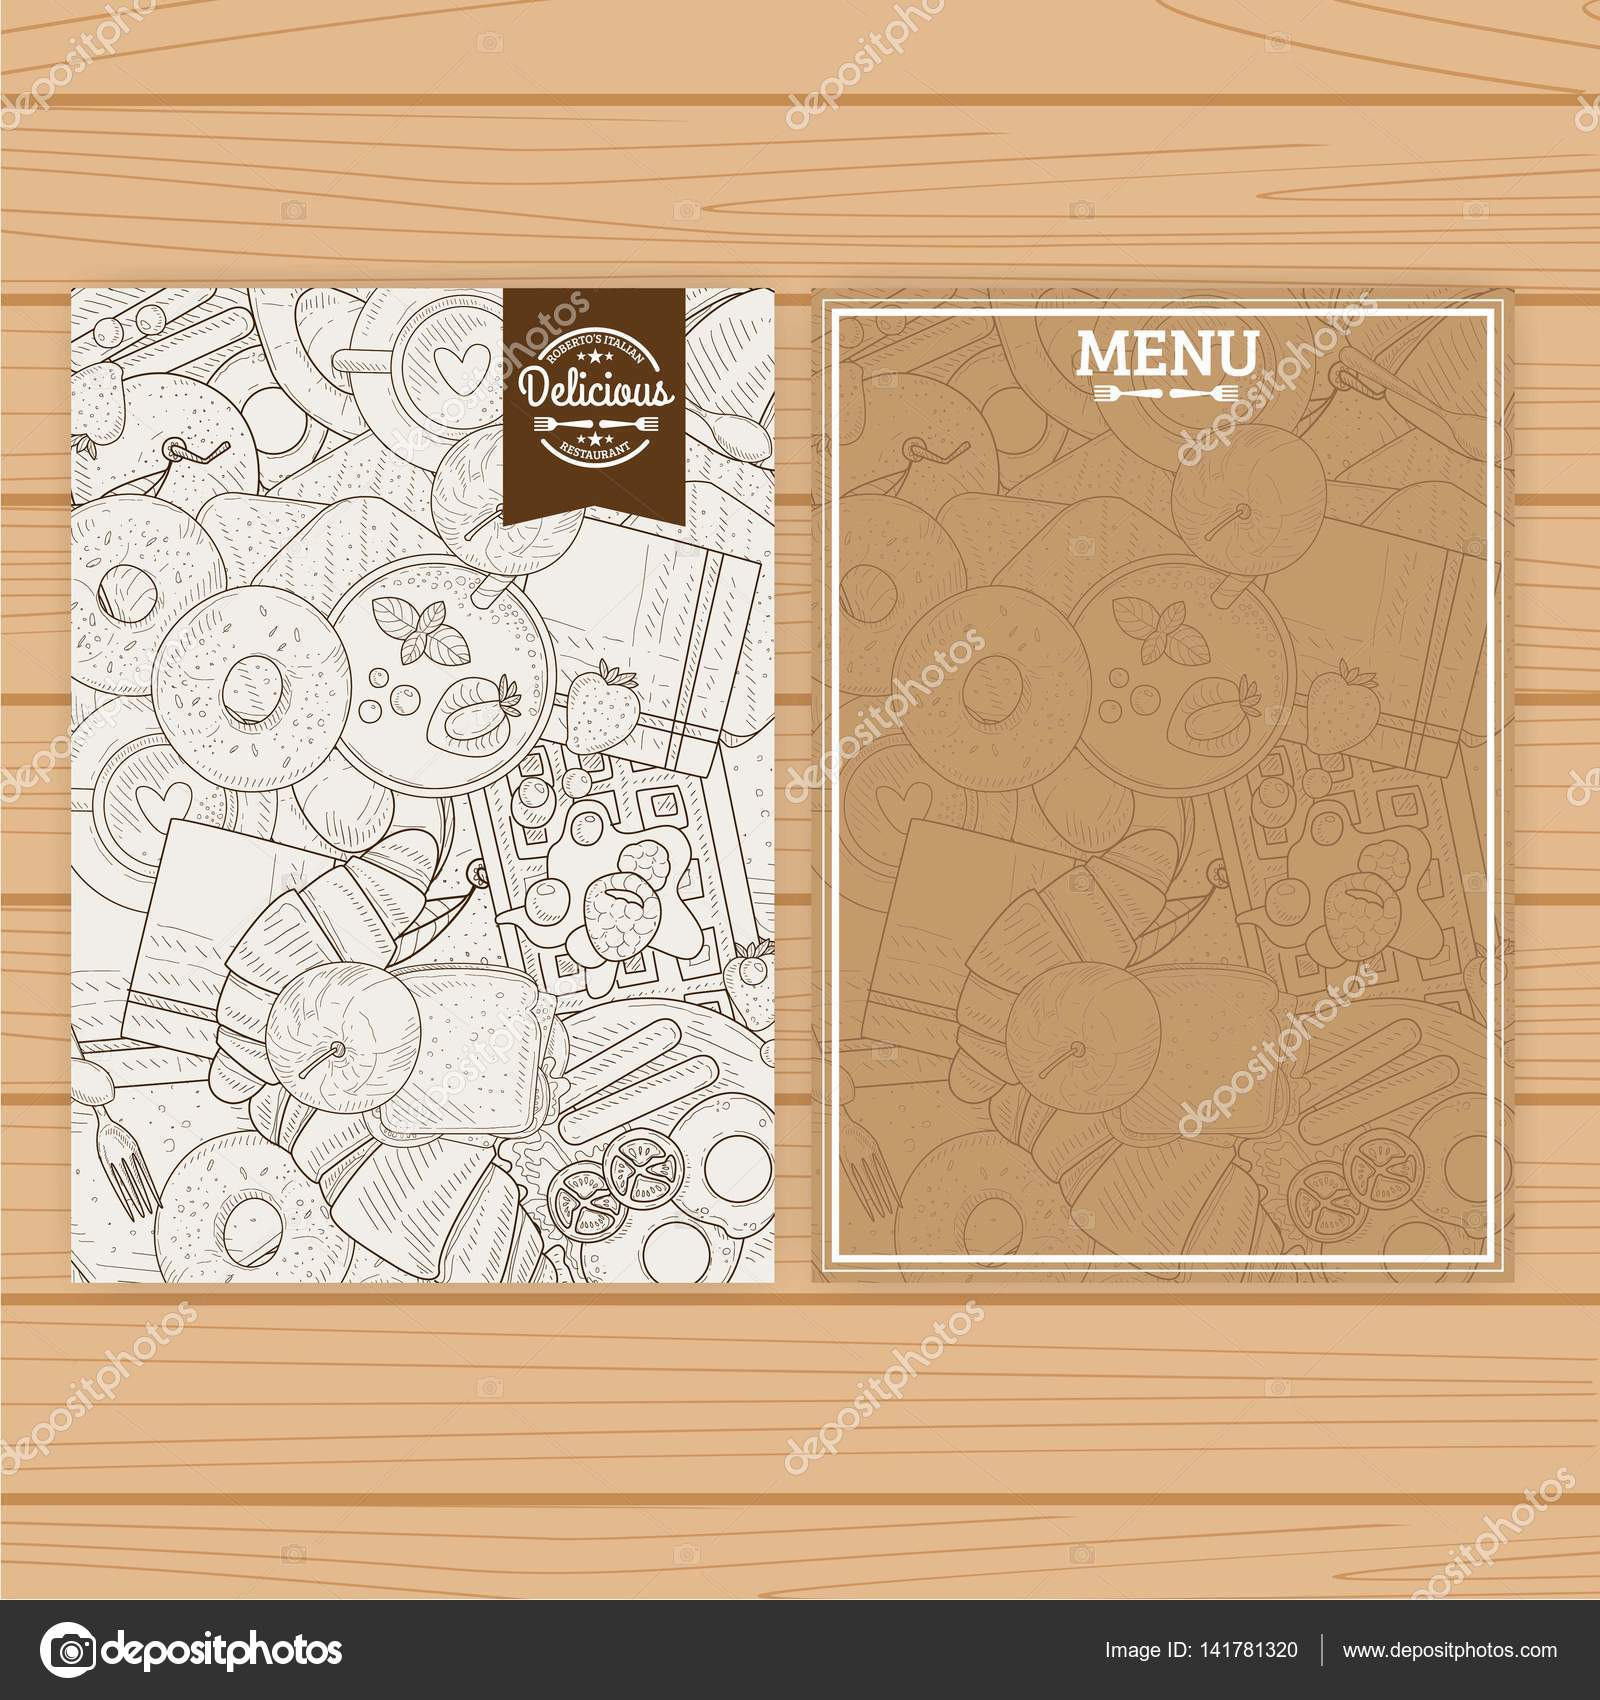 Menu board template with food handrawn pattern for coffee shop or ...